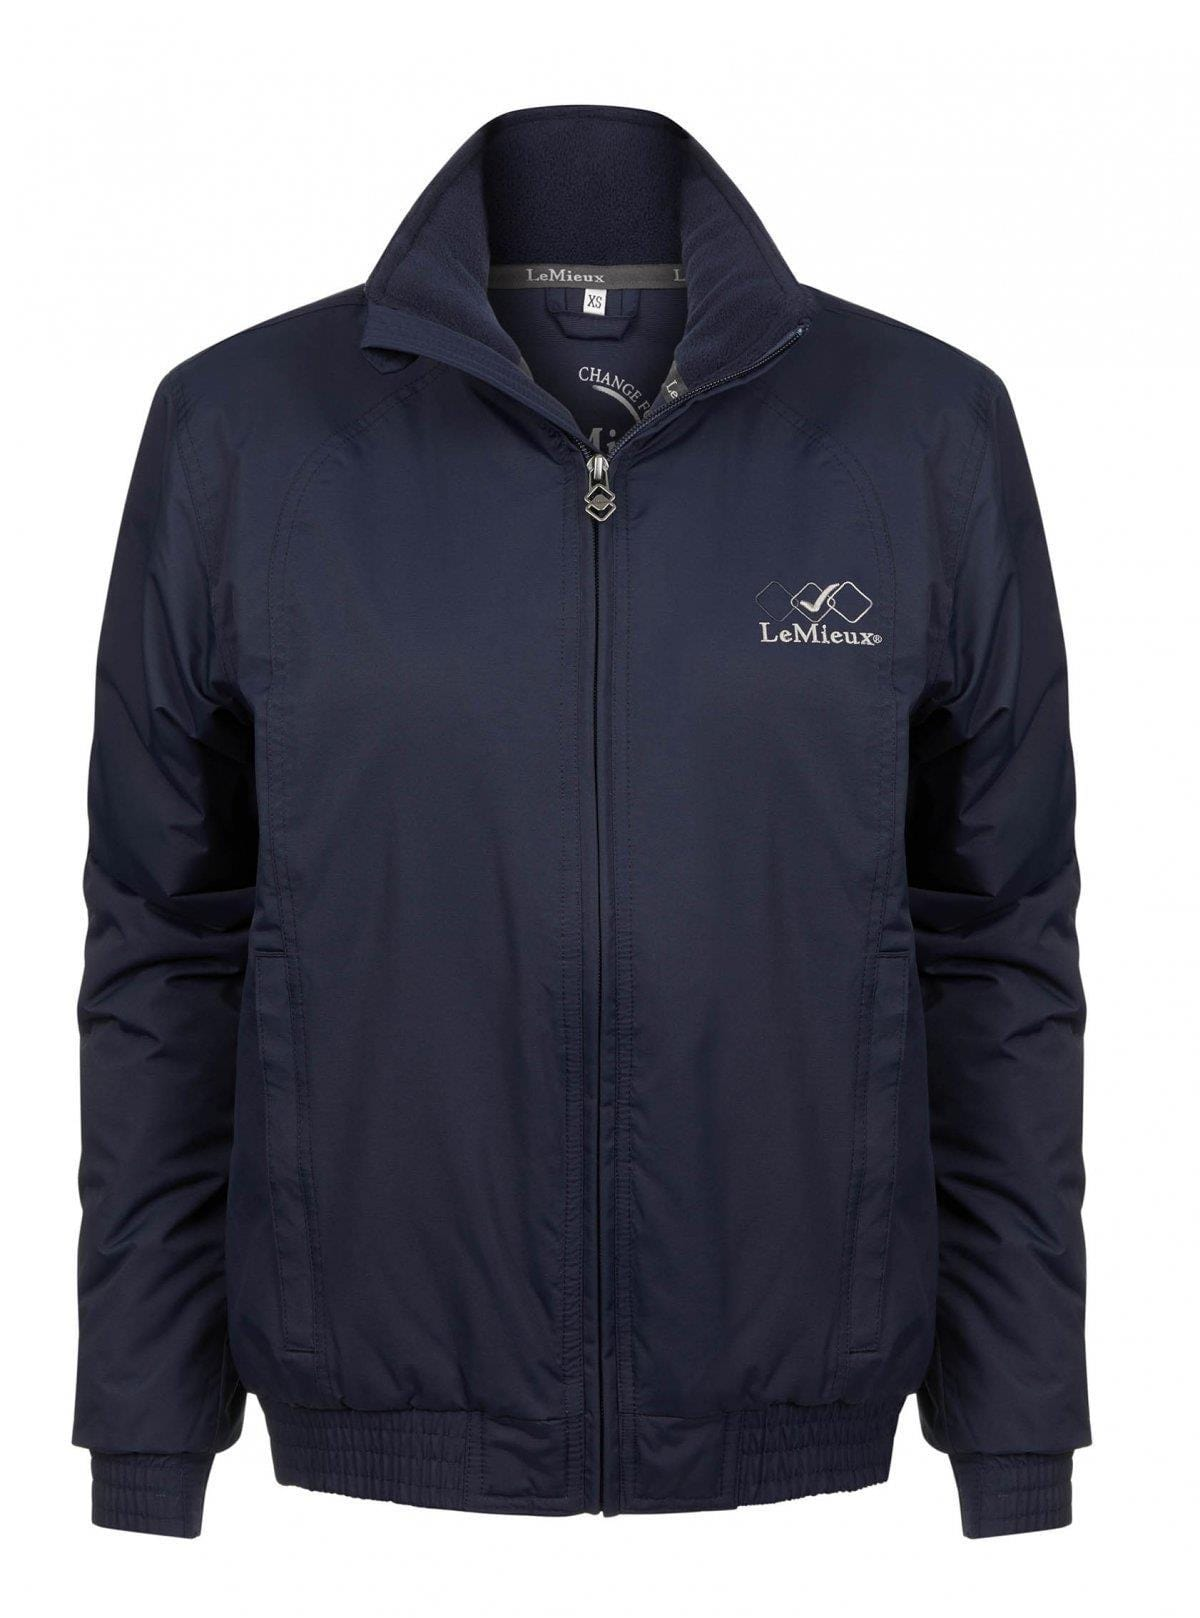 LeMieux Team LeMieux Crew Waterproof Unisex  Jacket